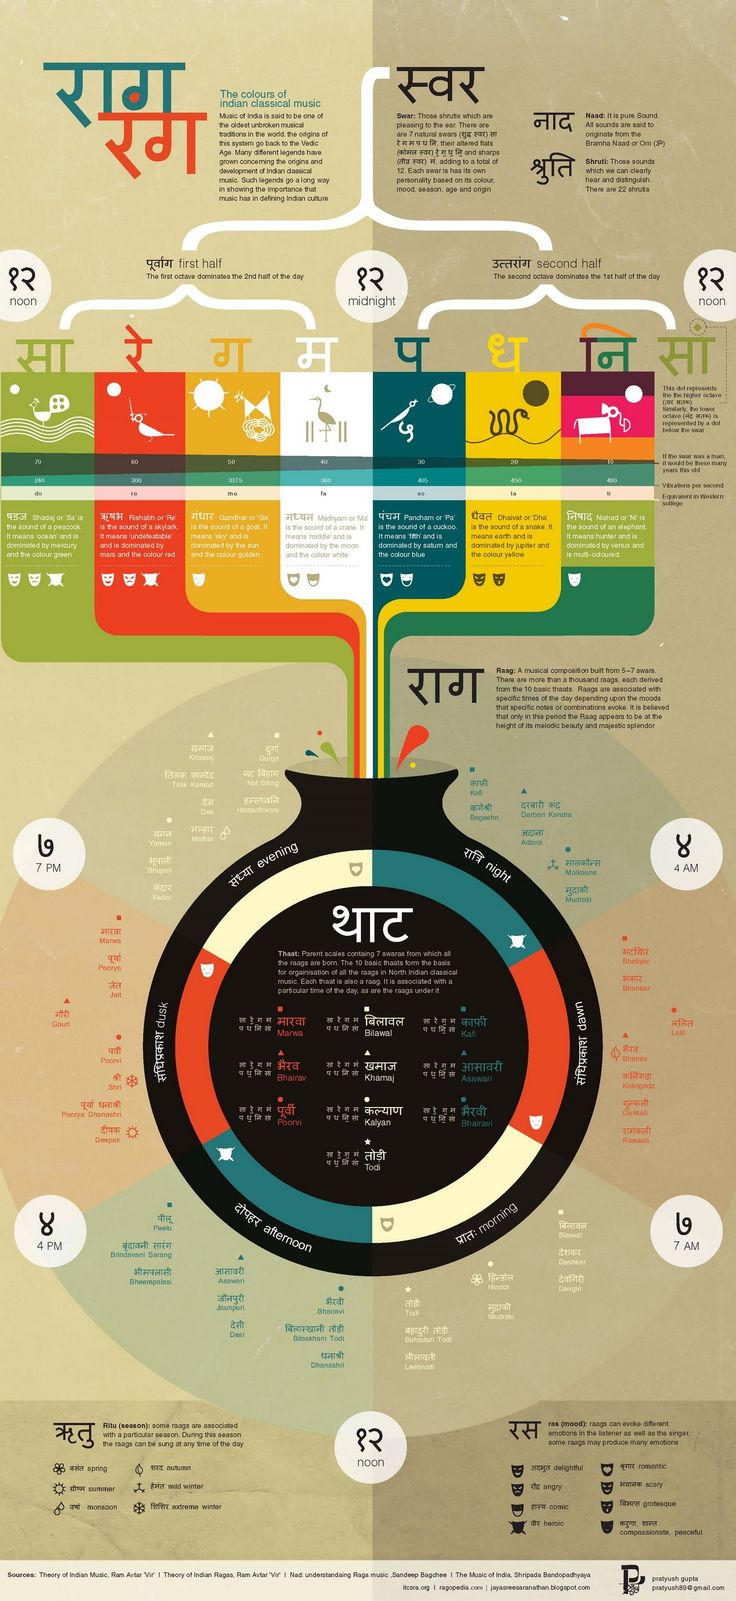 Amazingly detailed infographic about Hindustani Music!